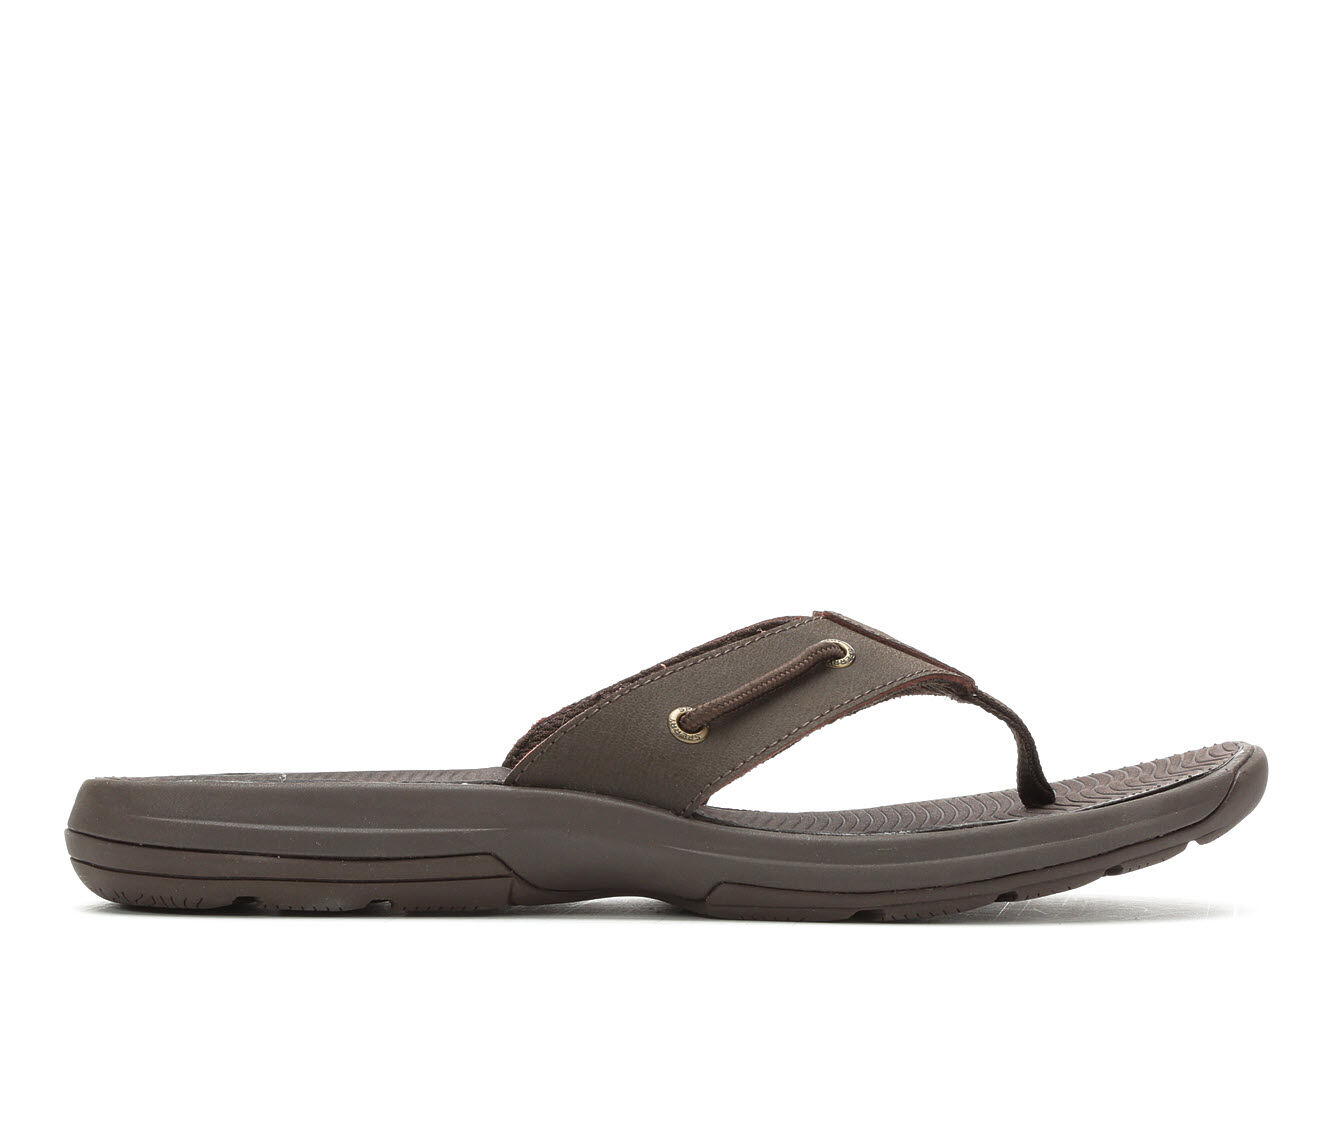 Men's Sperry Warwick Thong Flip-Flops Brown